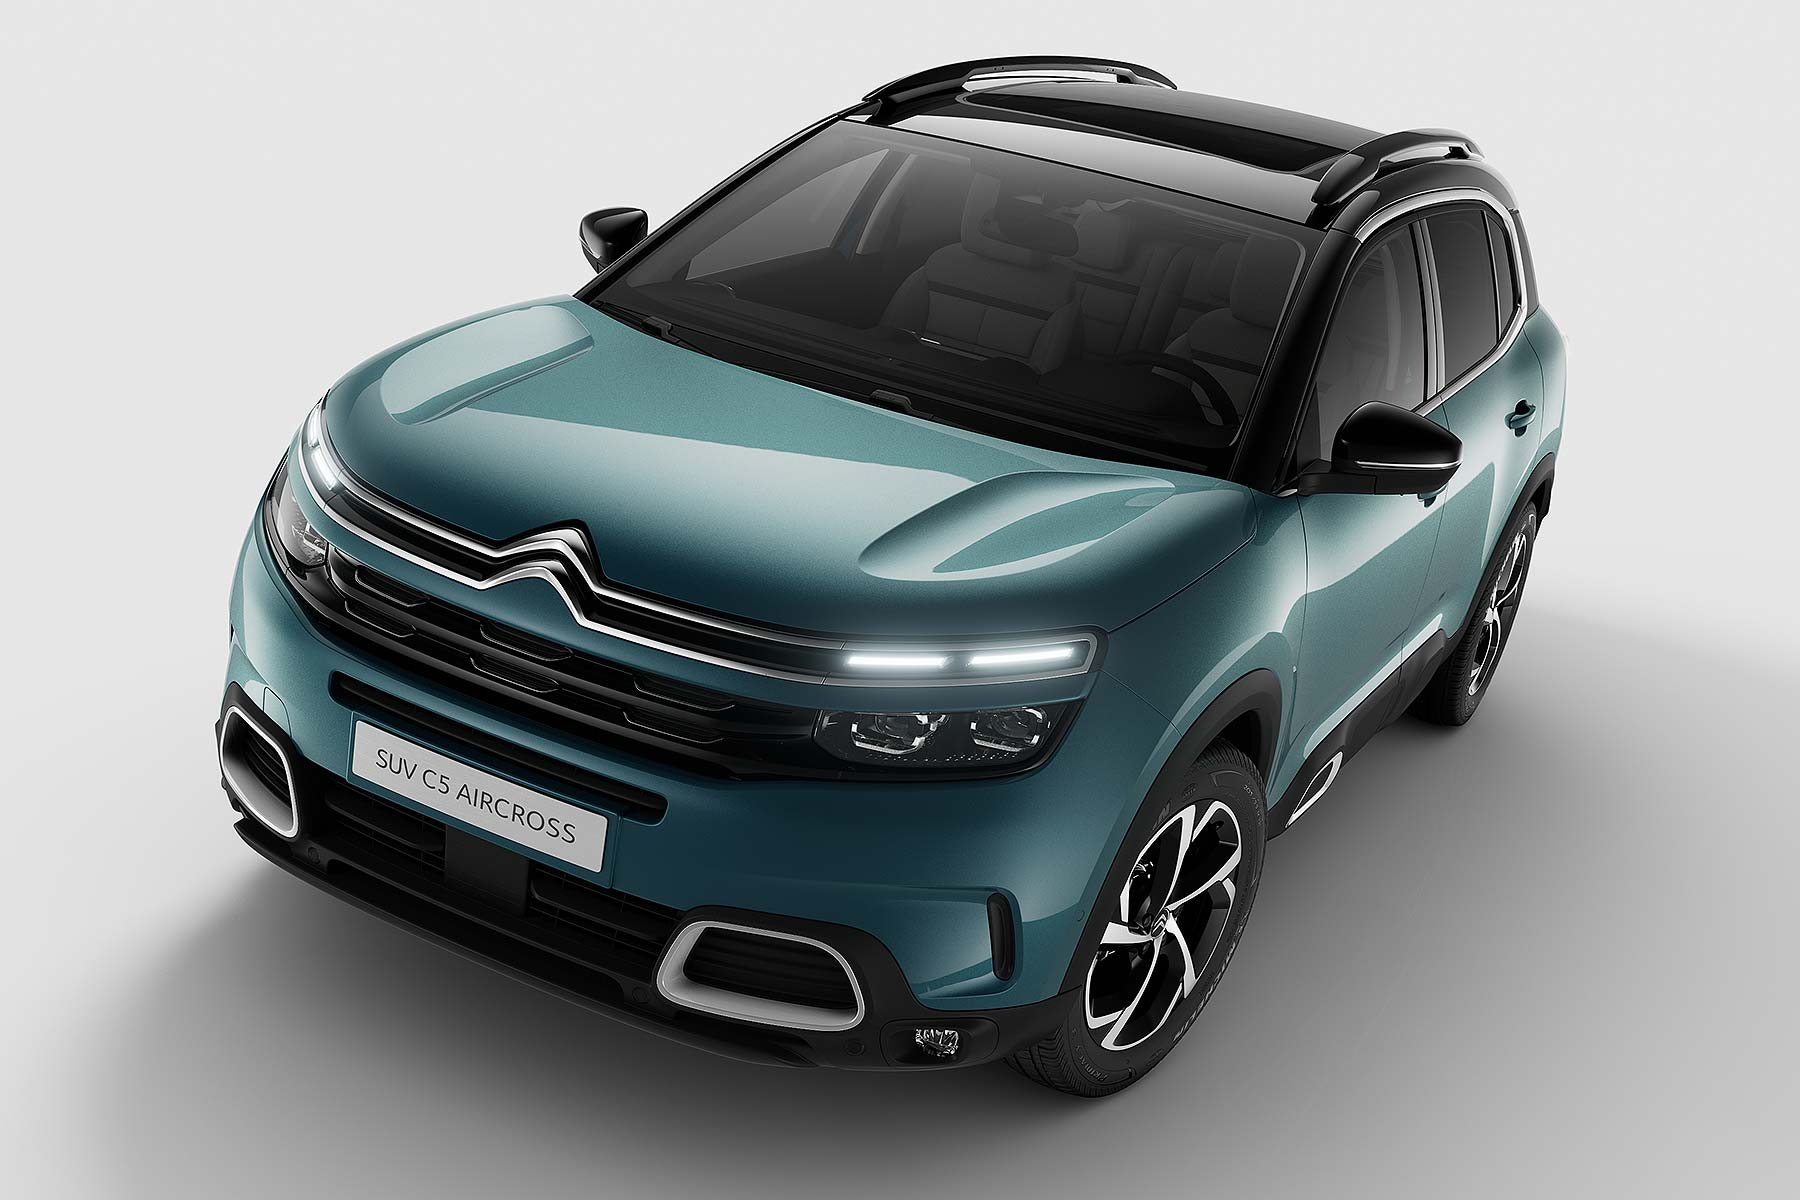 New 2019 Citroen C5 Aircross family SUV